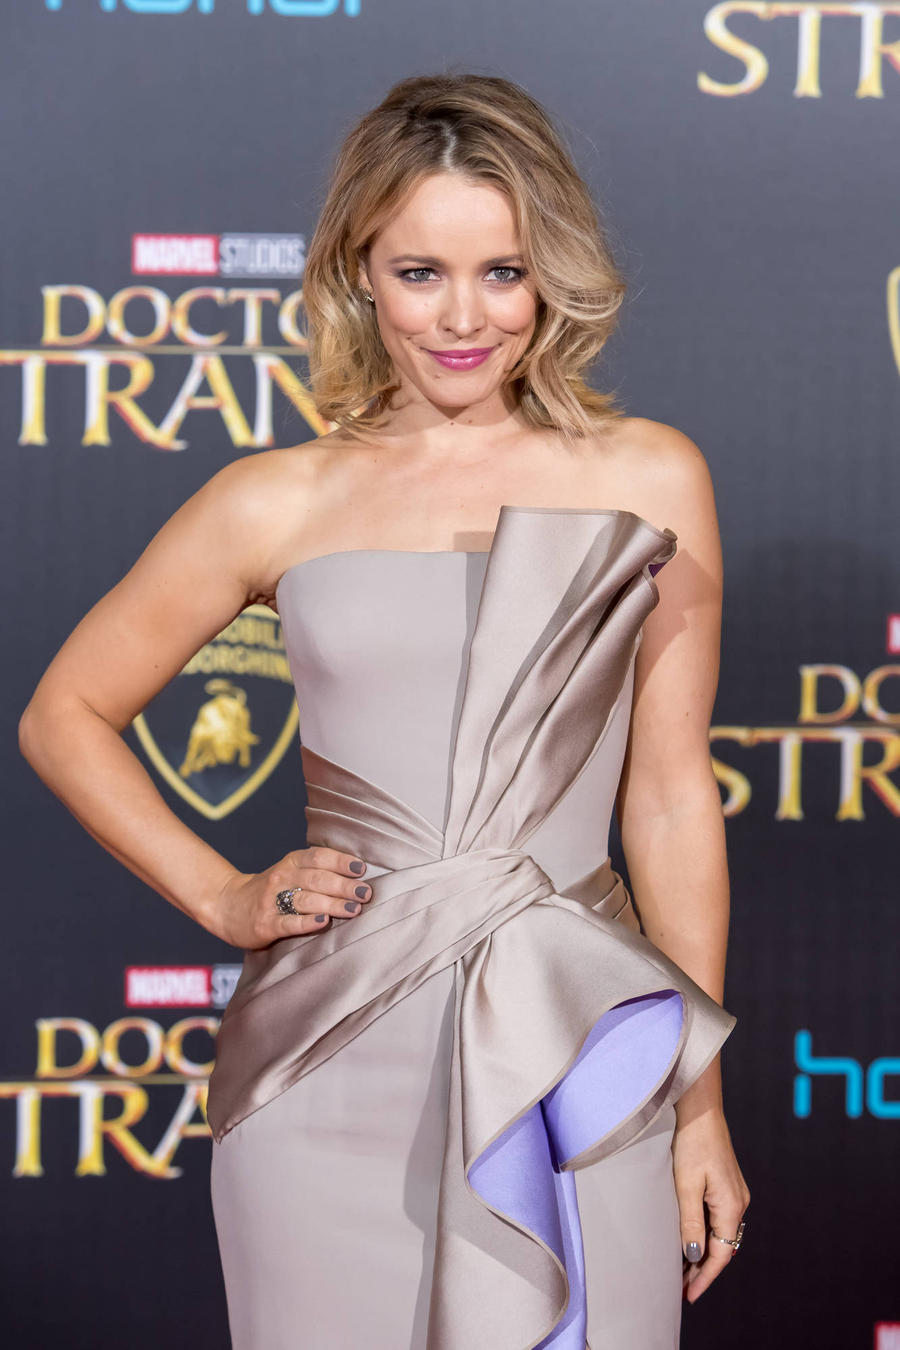 Rachel Mcadams Credits Benedict Cumberbatch's Emotional Doctor Strange For Movie Tears